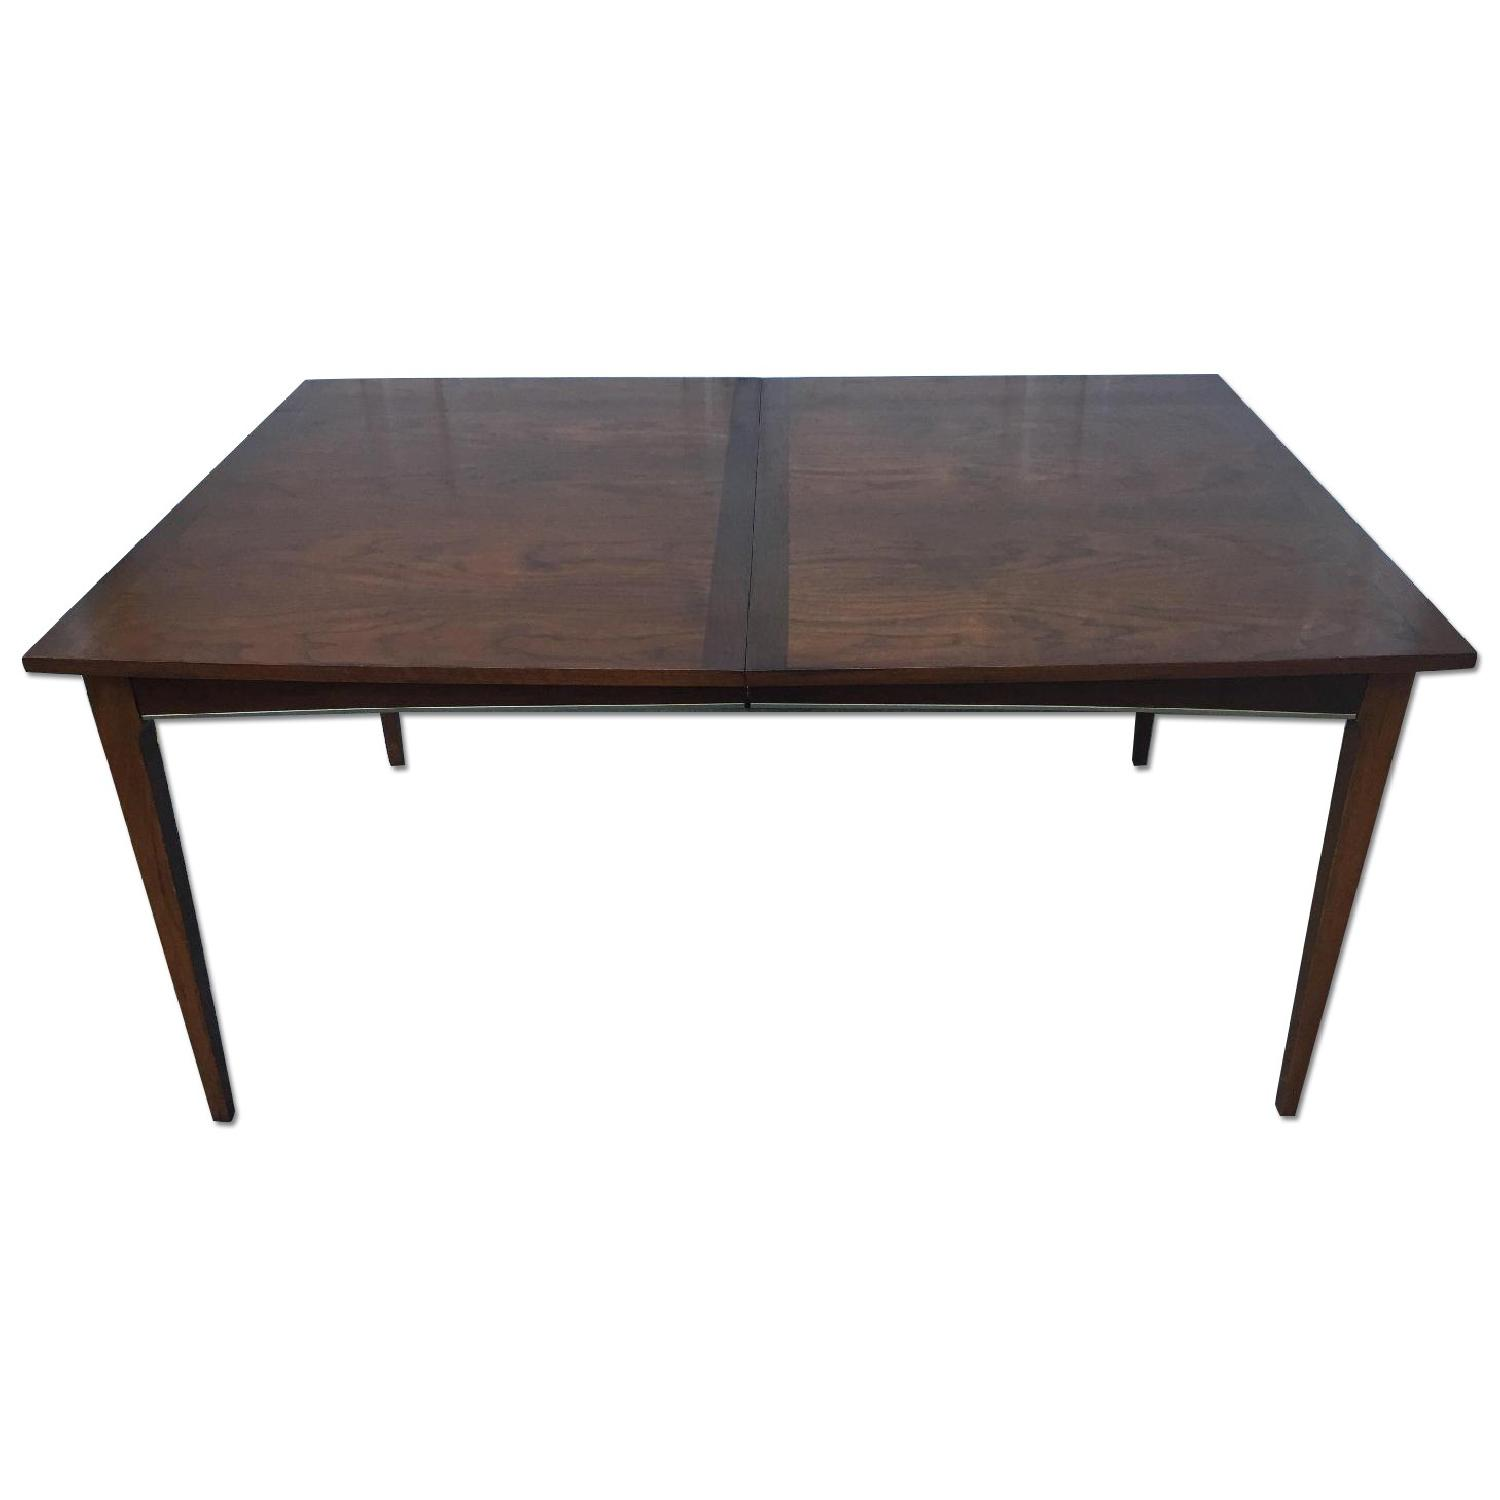 Mid Century Modern Walnut Dining Table with Brass Accents - image-0